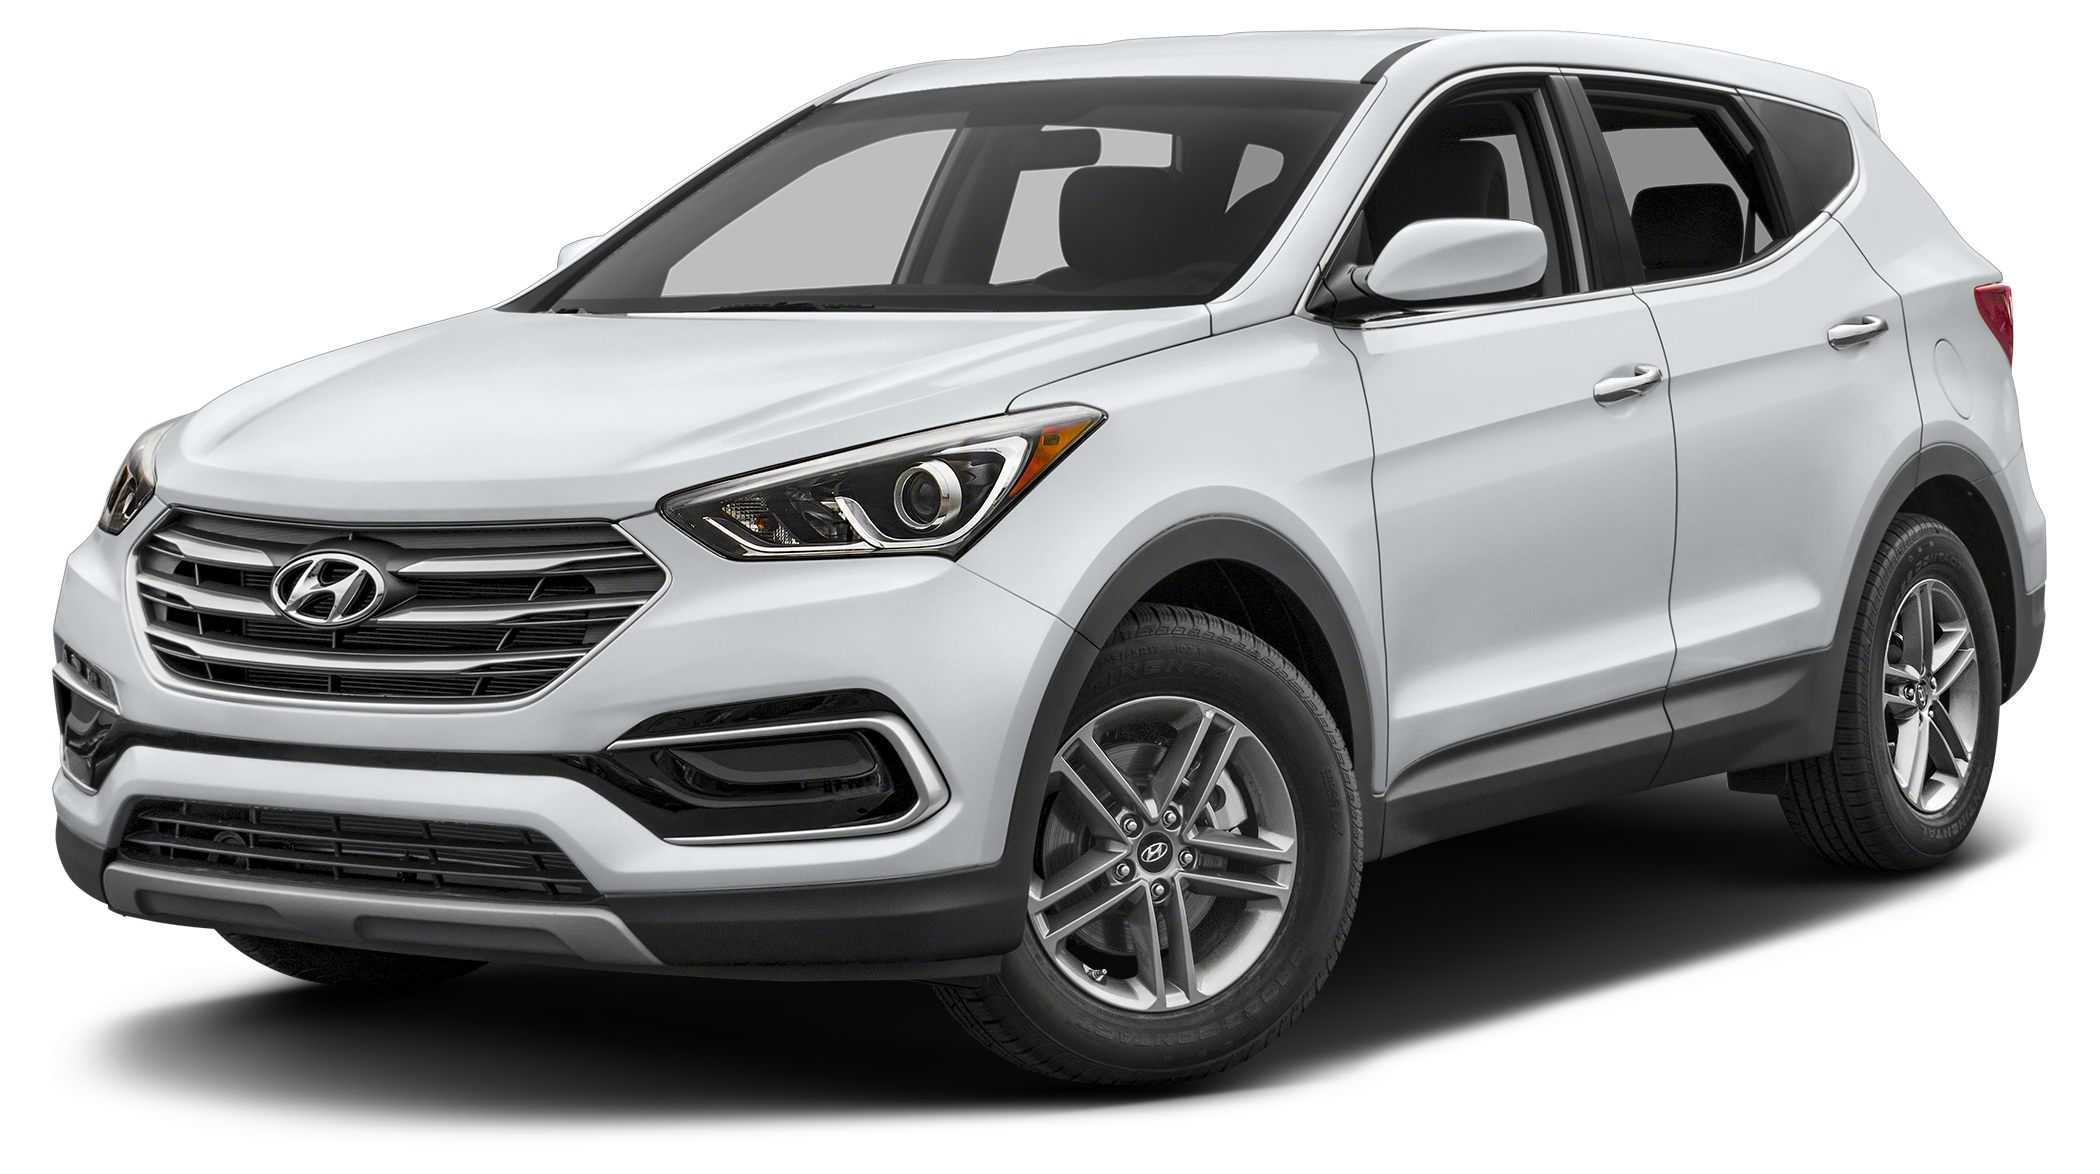 cars for in marion oh used 2017 hyundai santa fe sport for in marion oh image 1